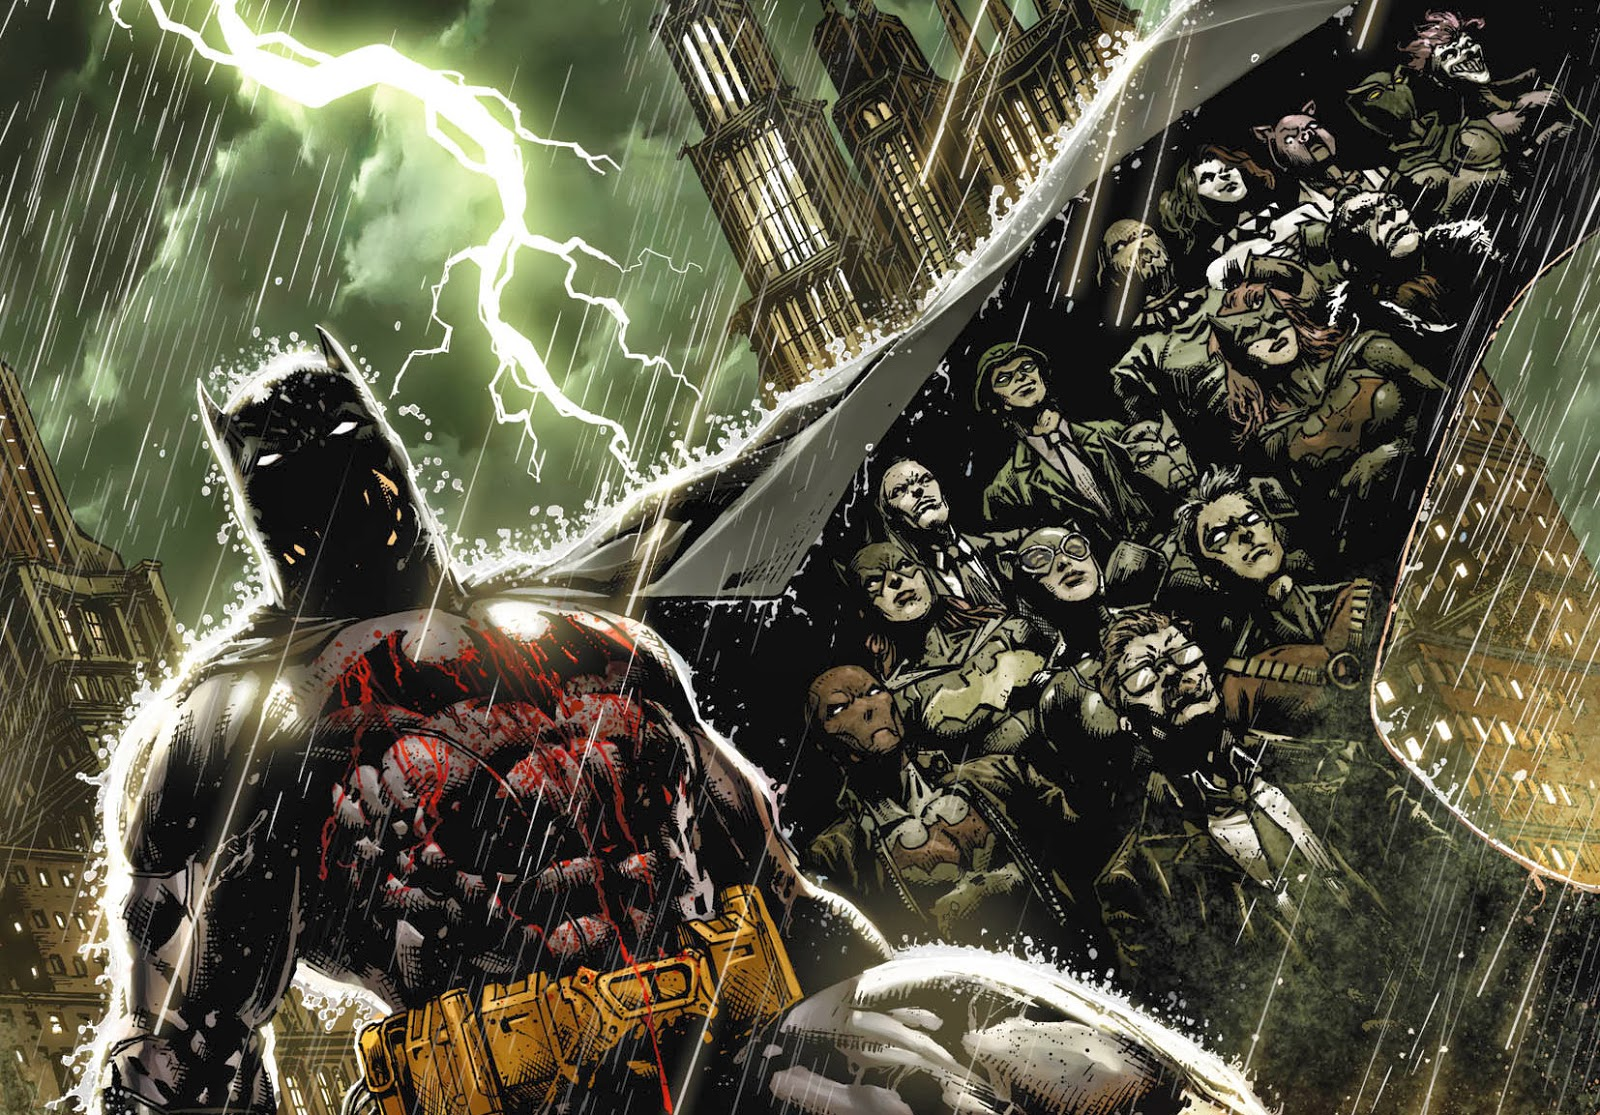 Batman: Eternal & Detective Comics #27 Announced - NYCC 2013